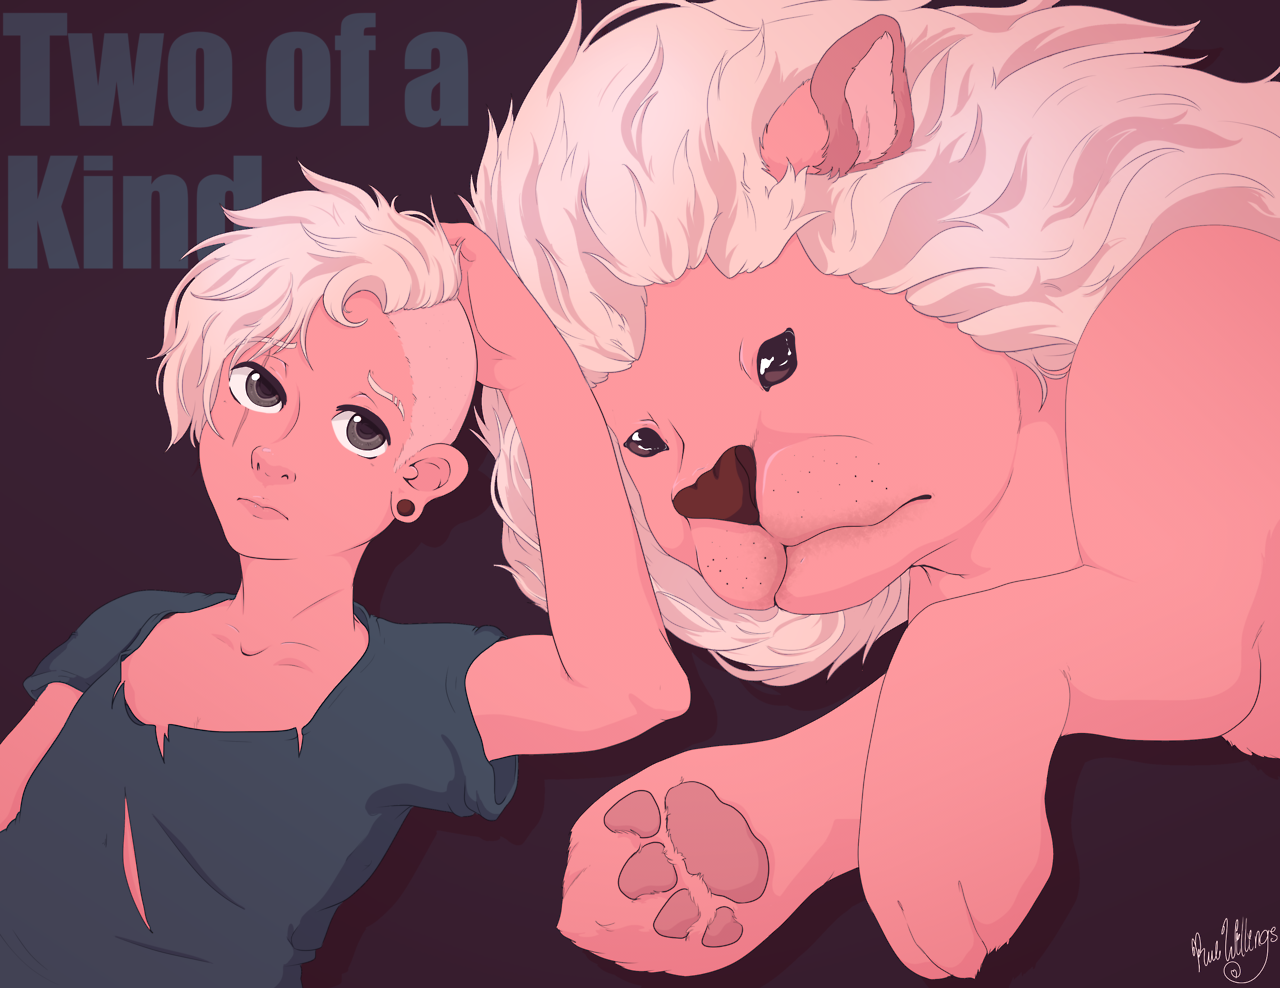 """Two of a Kind. "" Lars is great and Lion is great and theyre just perfect and I'm so excited for more/// I haven't drawn with this much pink in forever;; For sale on redbubble!"